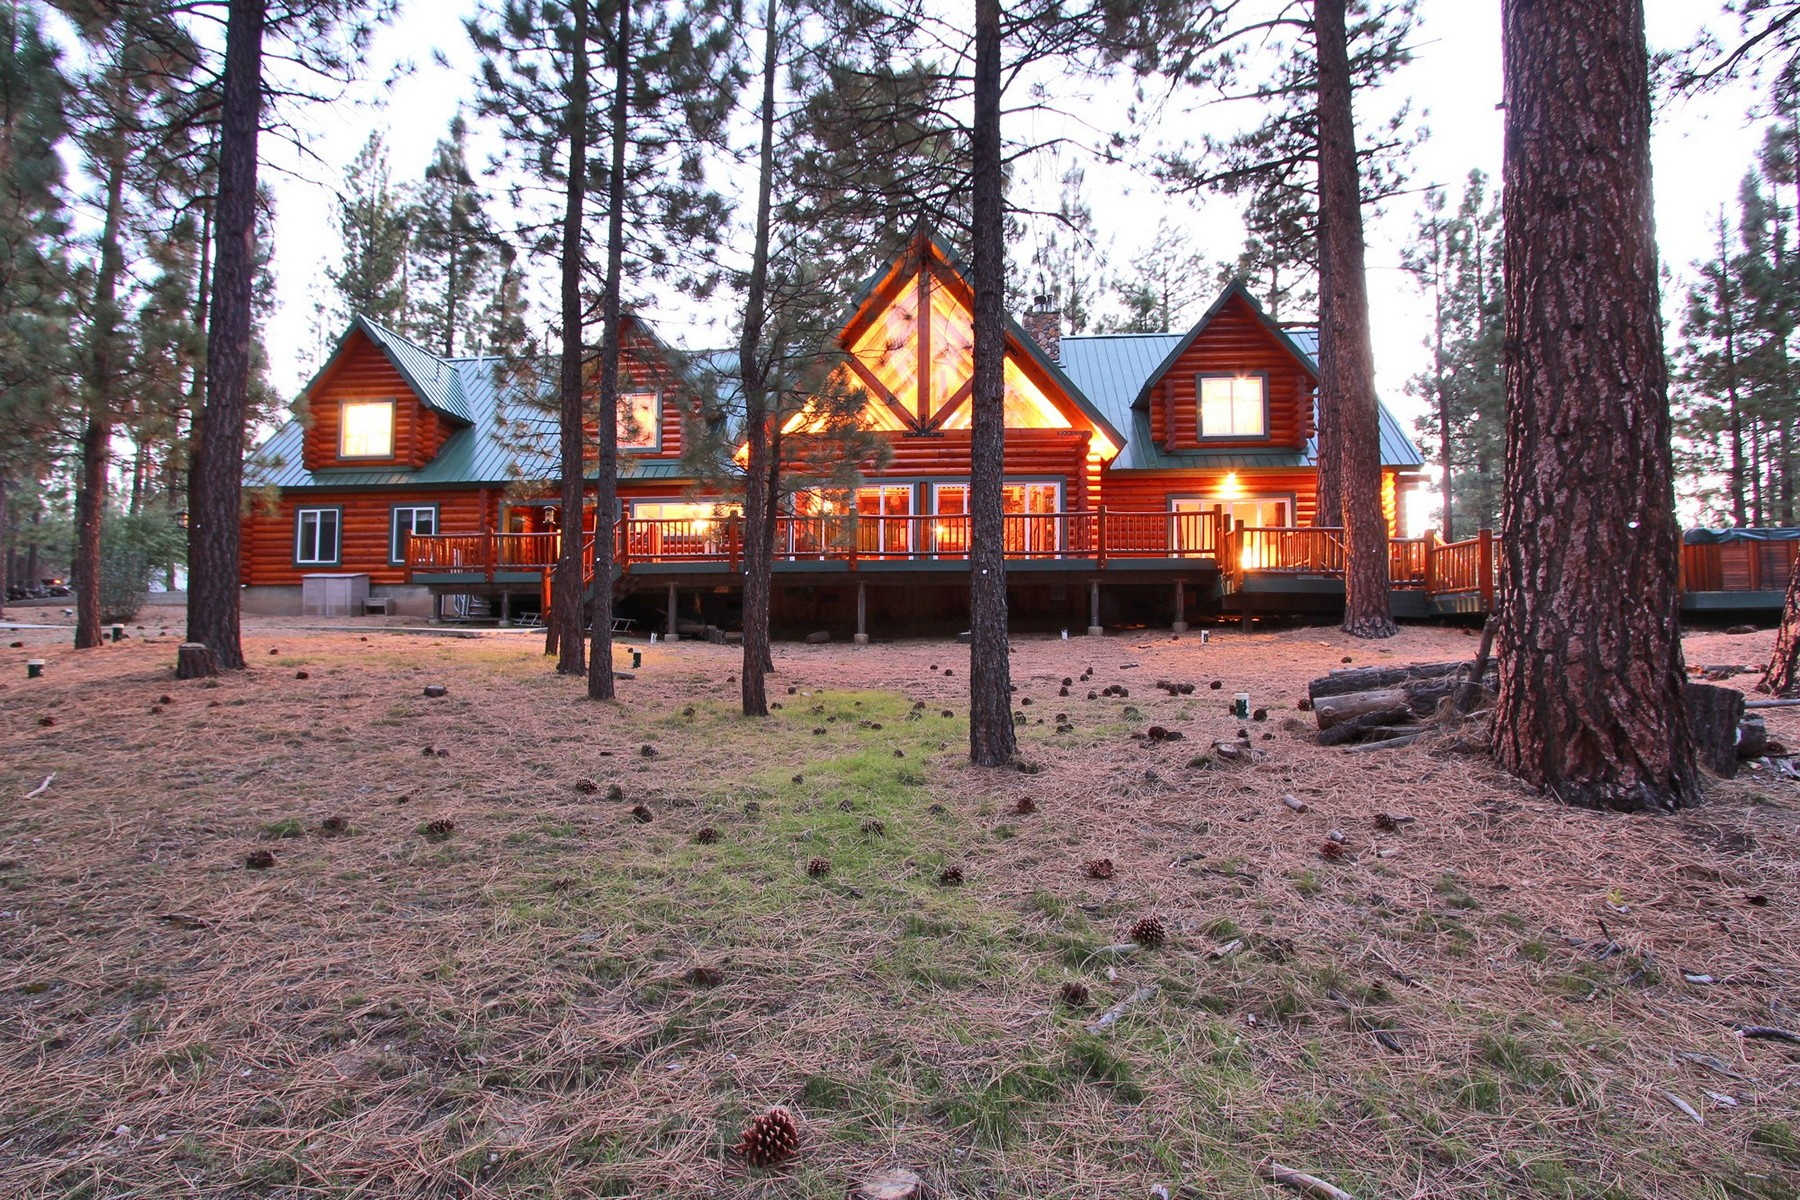 Single Family Home for Sale at Timber Lodge 125 N. Starvation Flats Big Bear Lake, California, 92315 United States